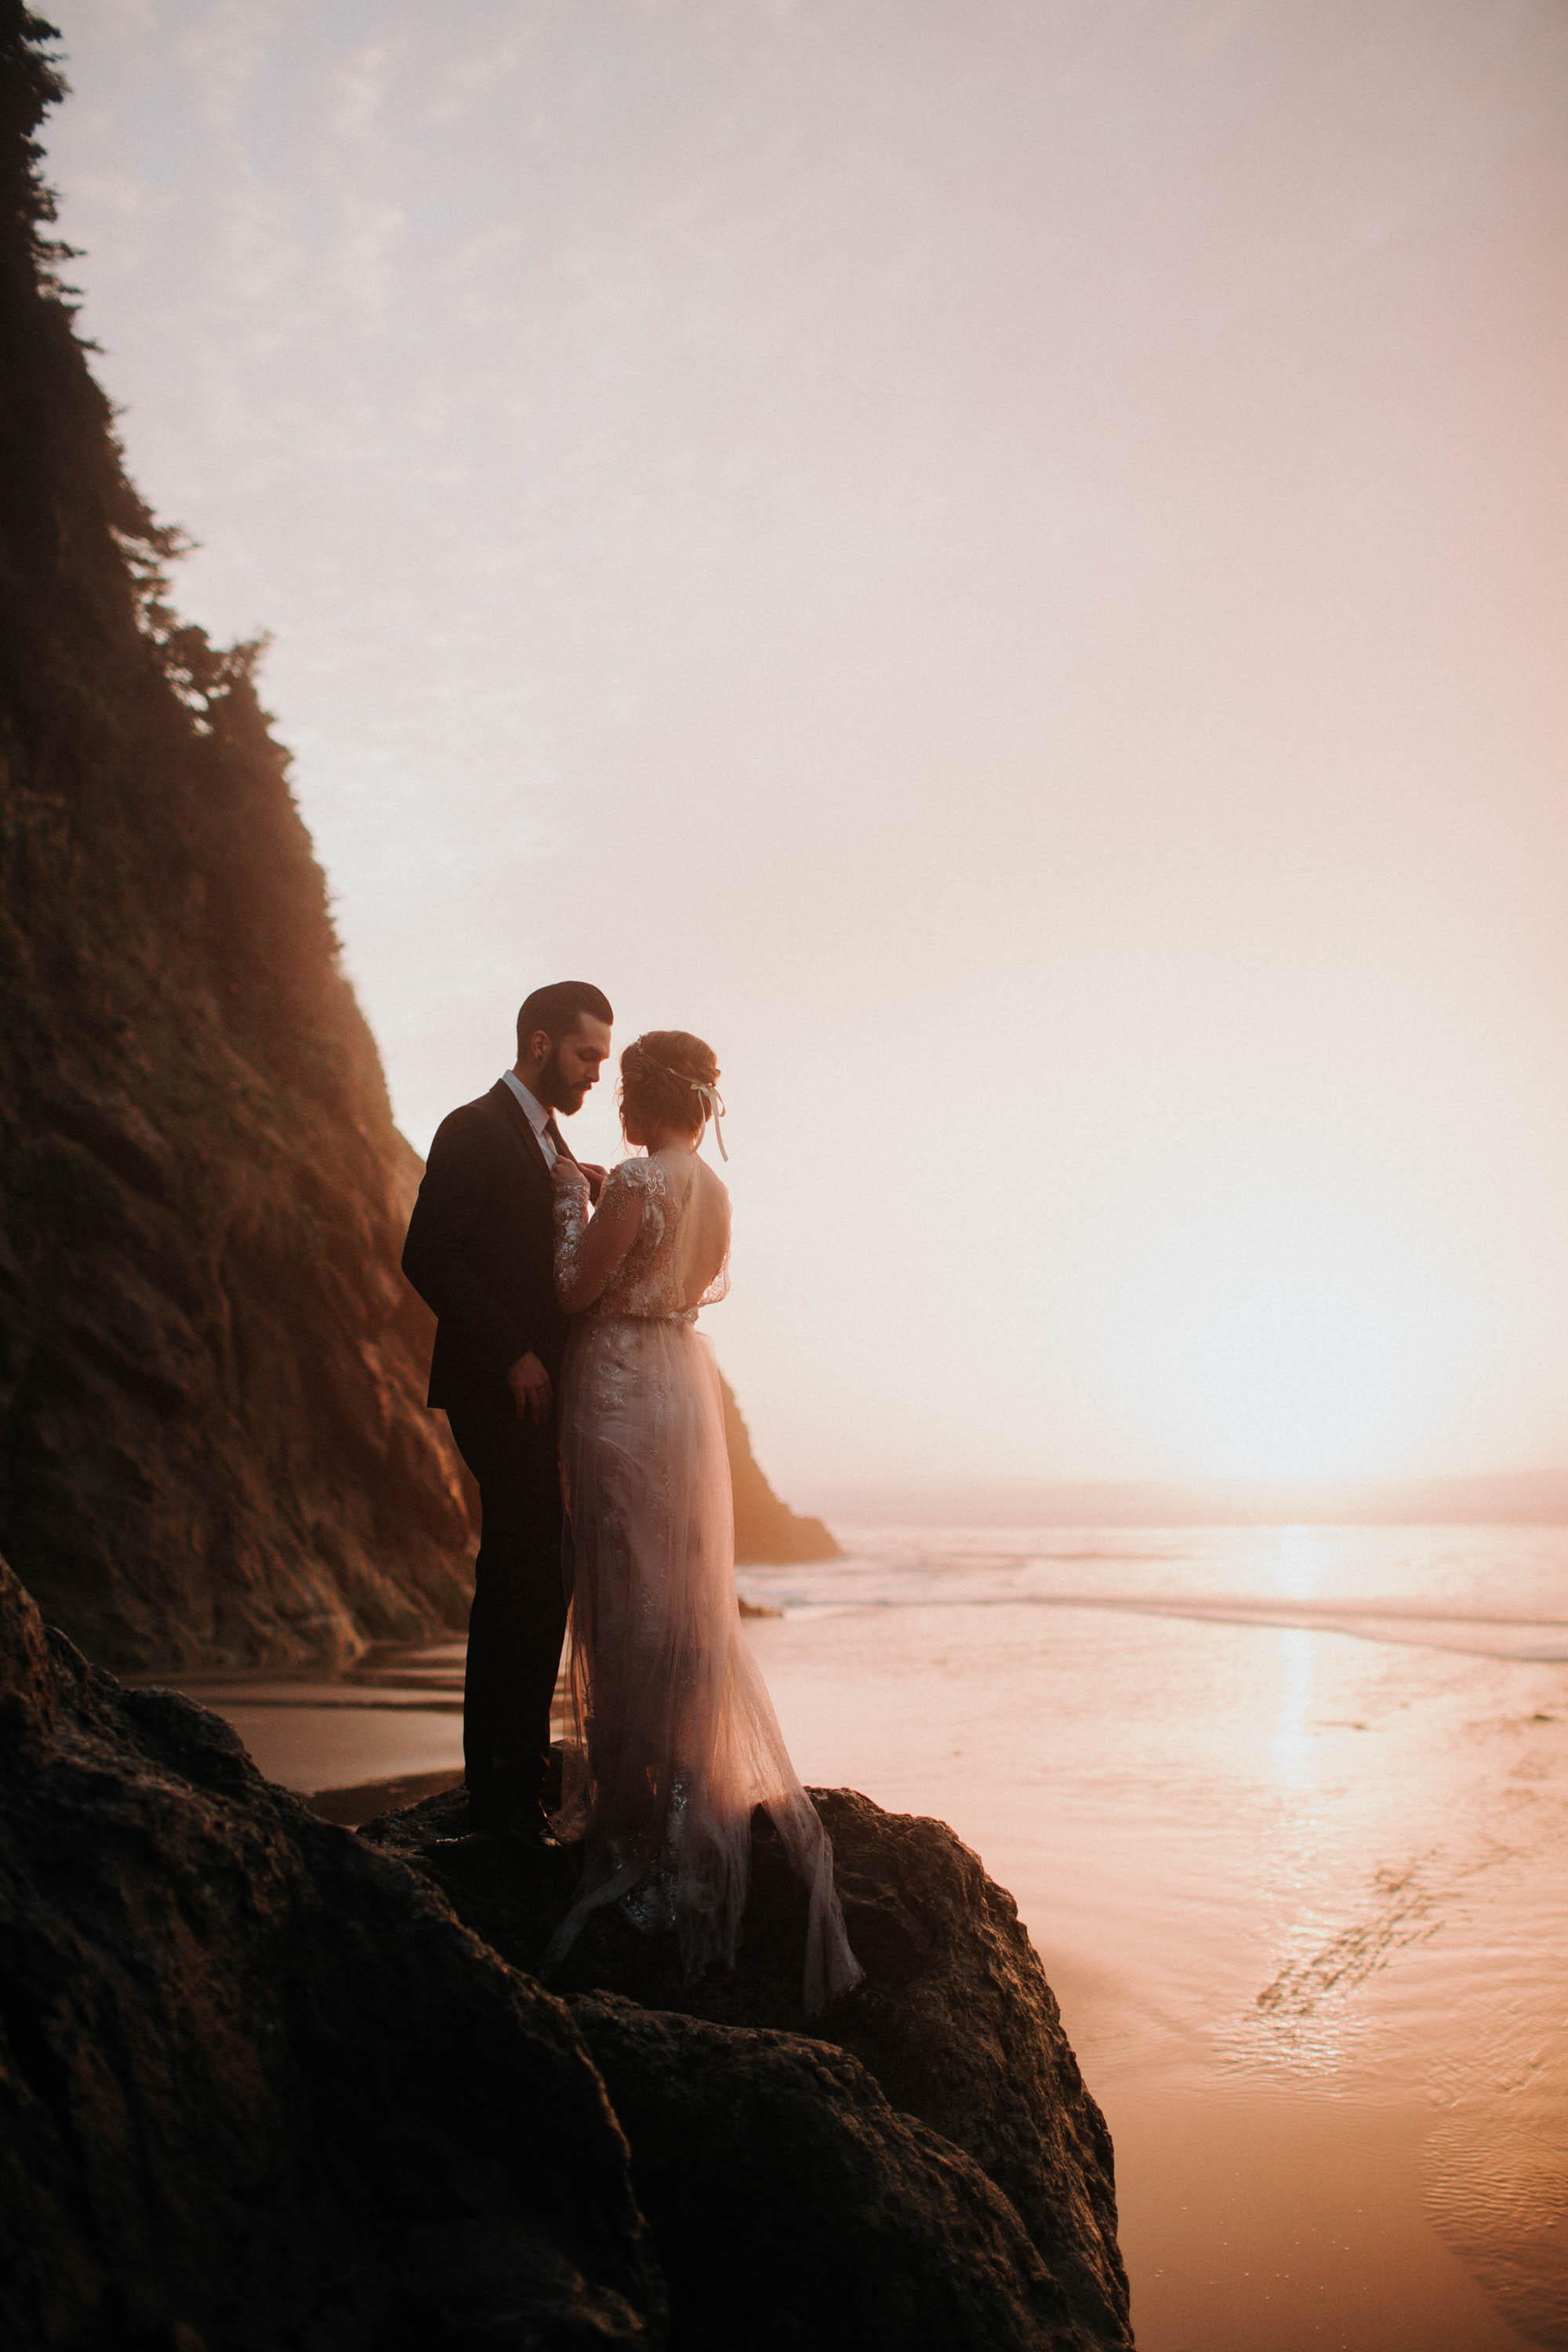 canonbeach_elopment_weddingphotographer-113.jpg